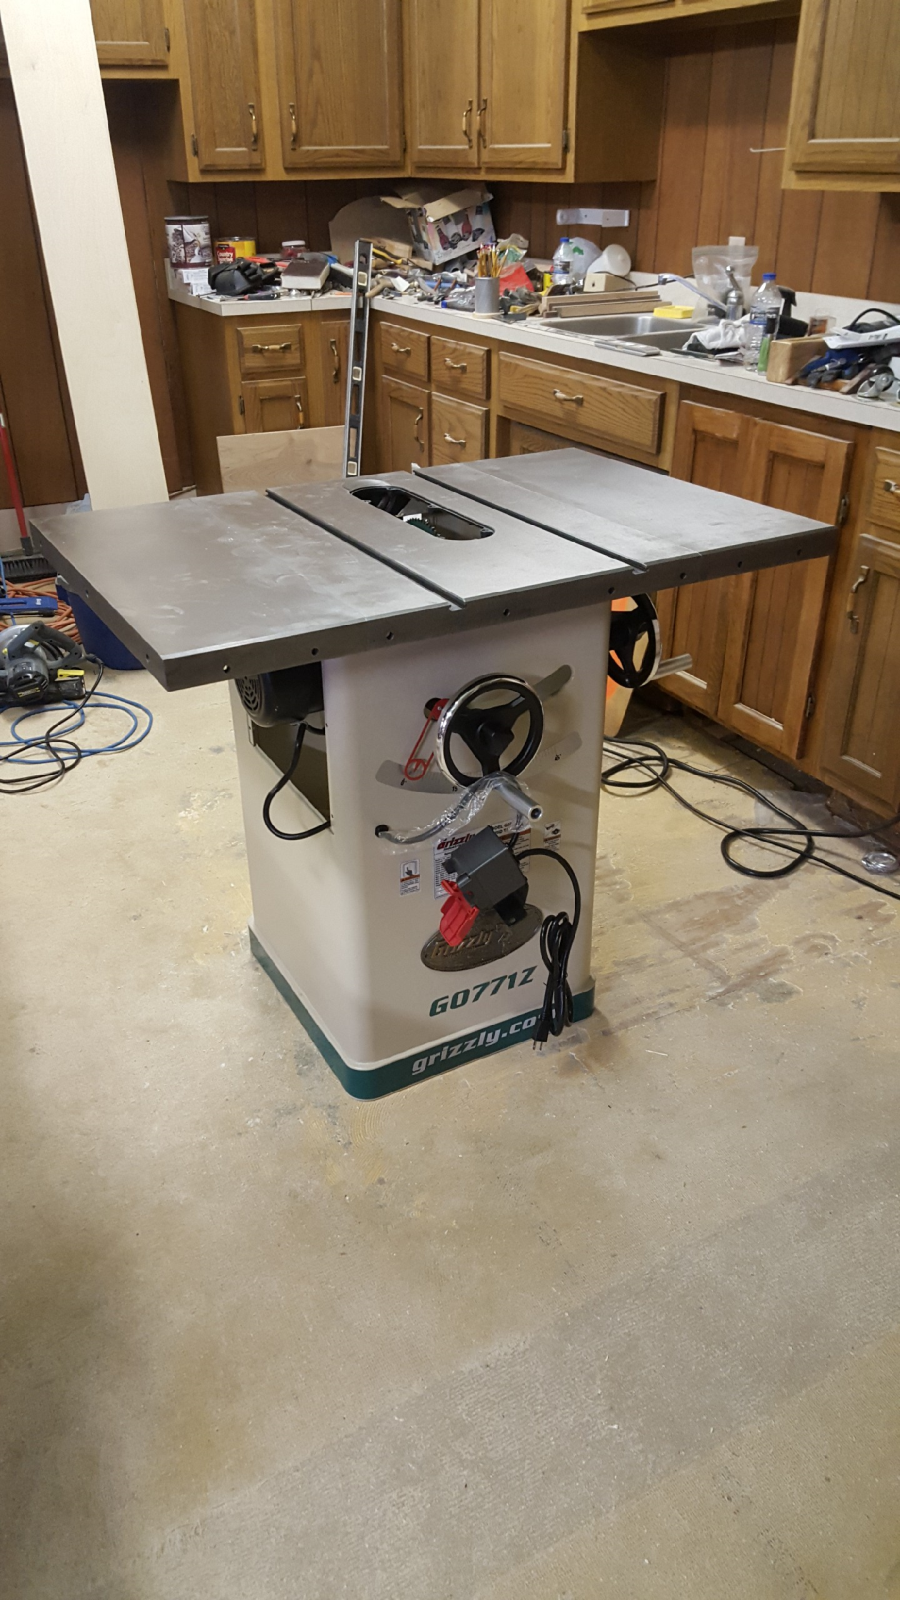 10 hybrid table saw with t shaped fence grizzly industrial would strongly recommend this machine to anyone wanting to upgrade from a cheap home improvement store table saw can easily see this saw as being the last greentooth Images